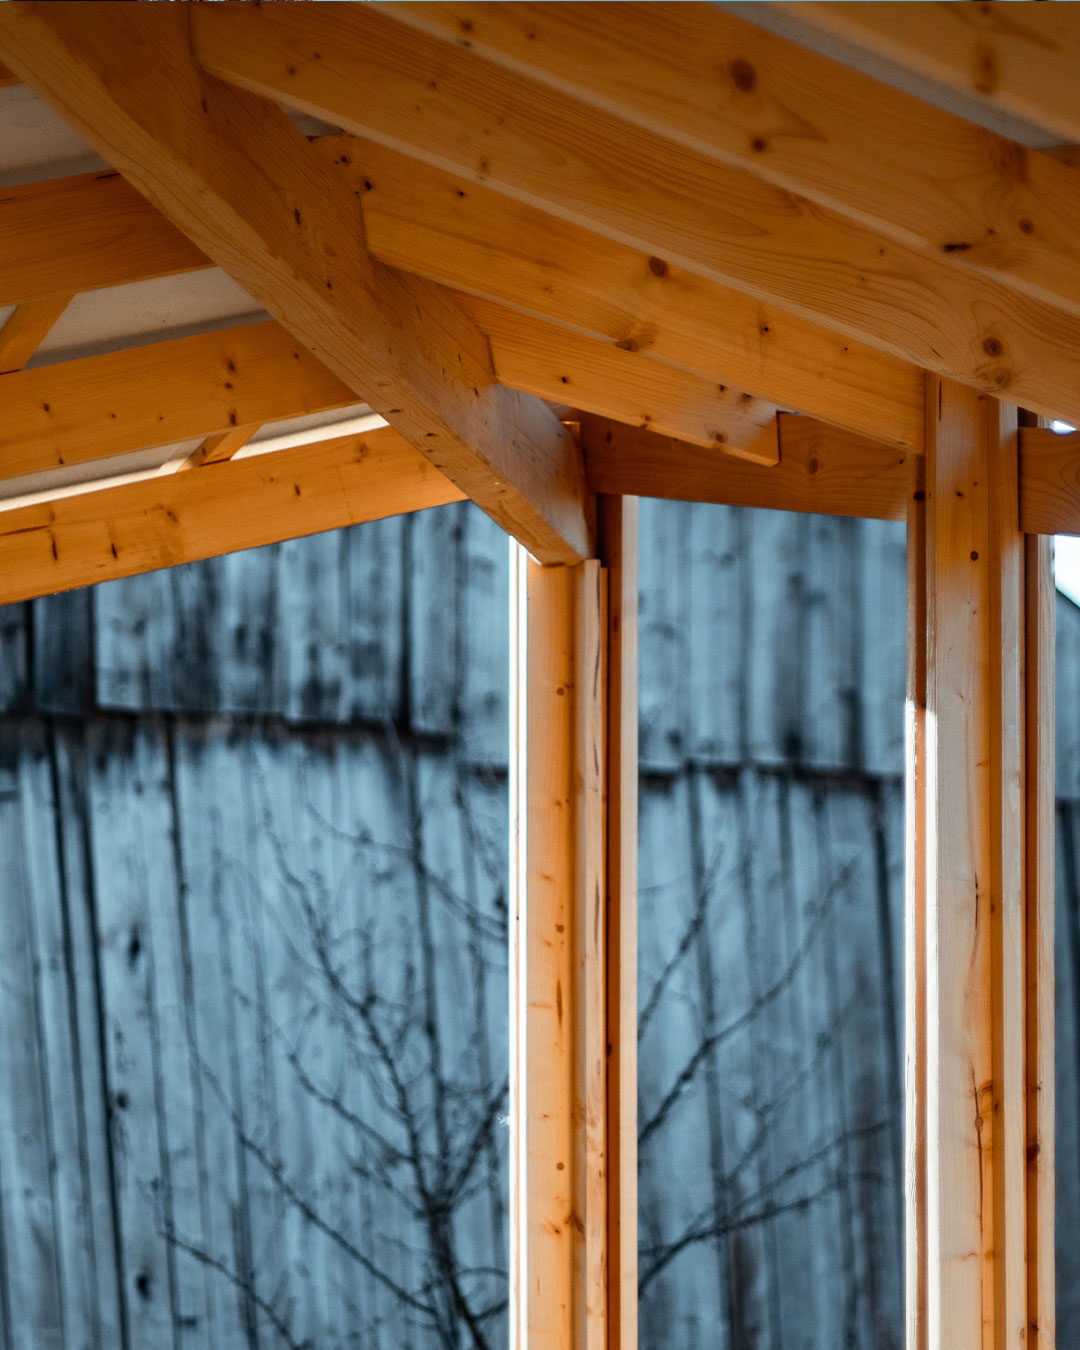 The inside of the gazebo roof, describing how this wood pavilion is made by joining wood planks.